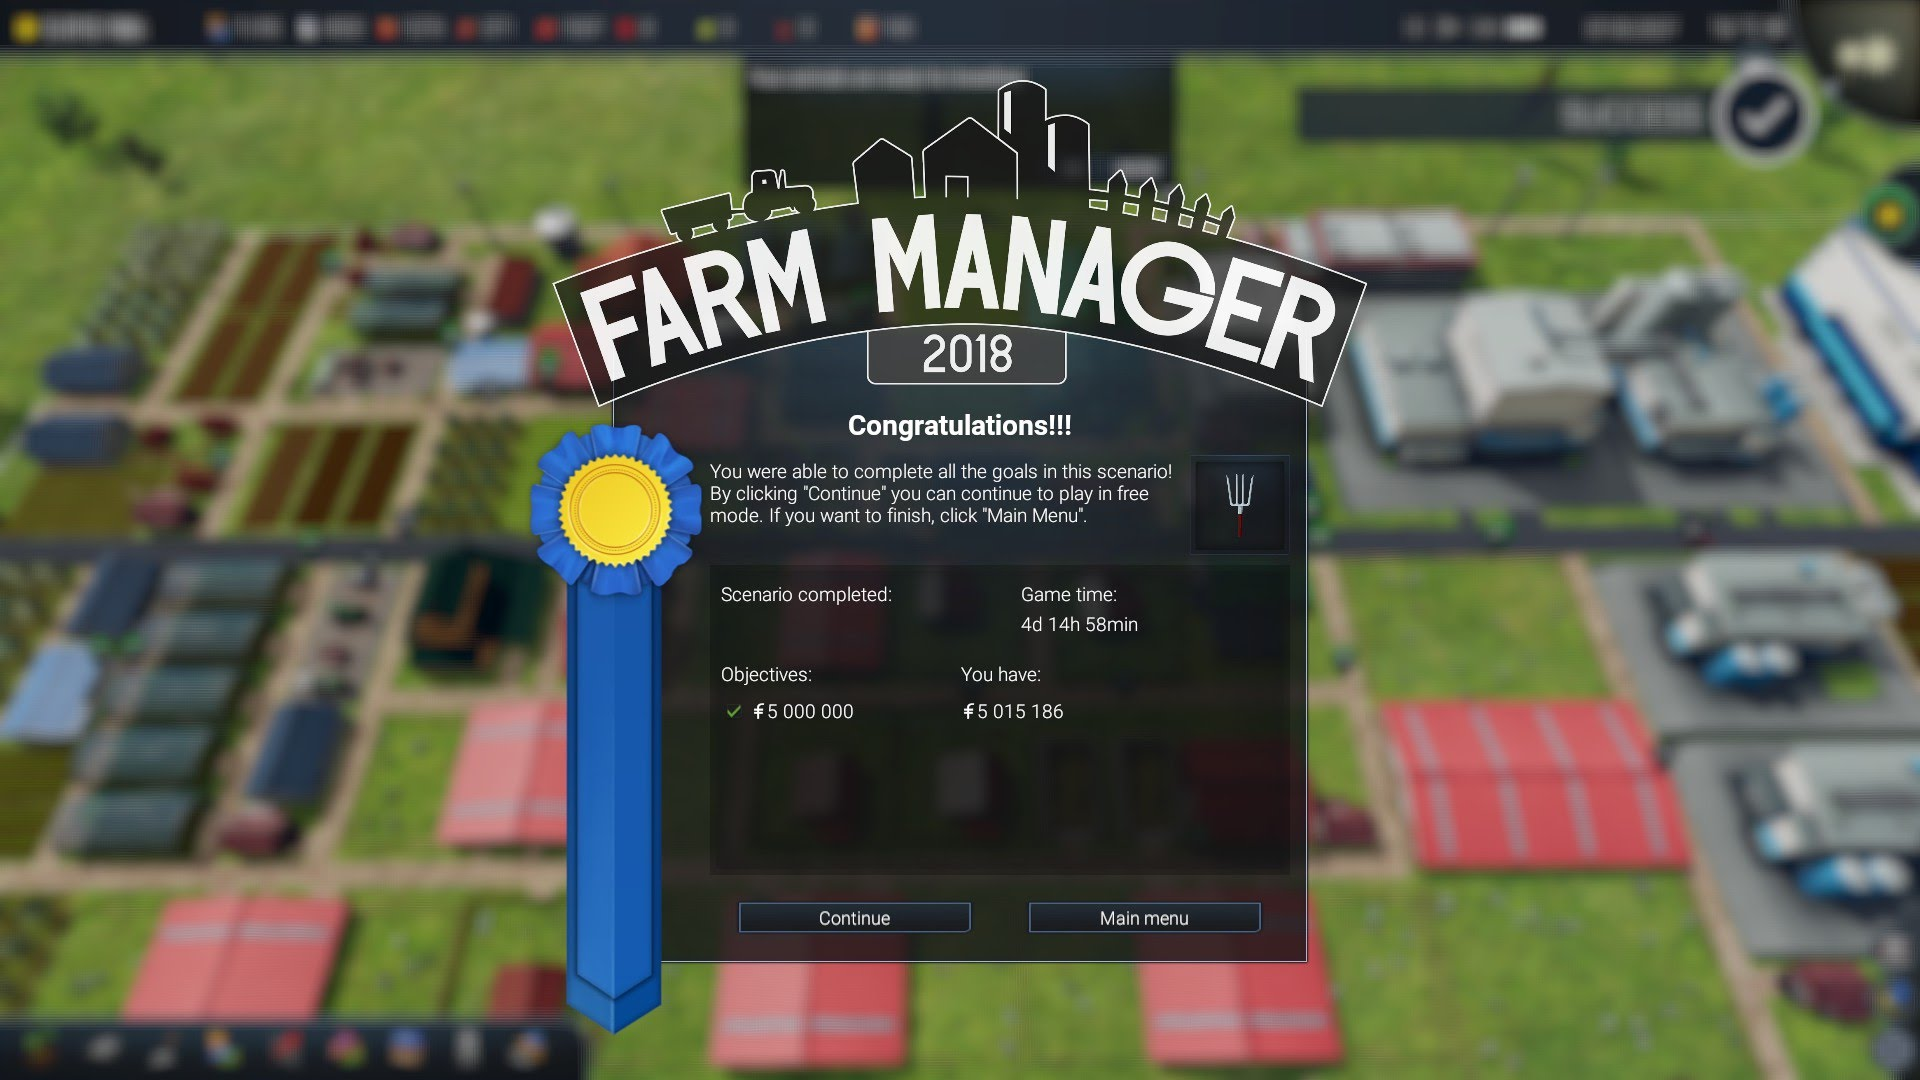 Farm Manager 2018 Campaign